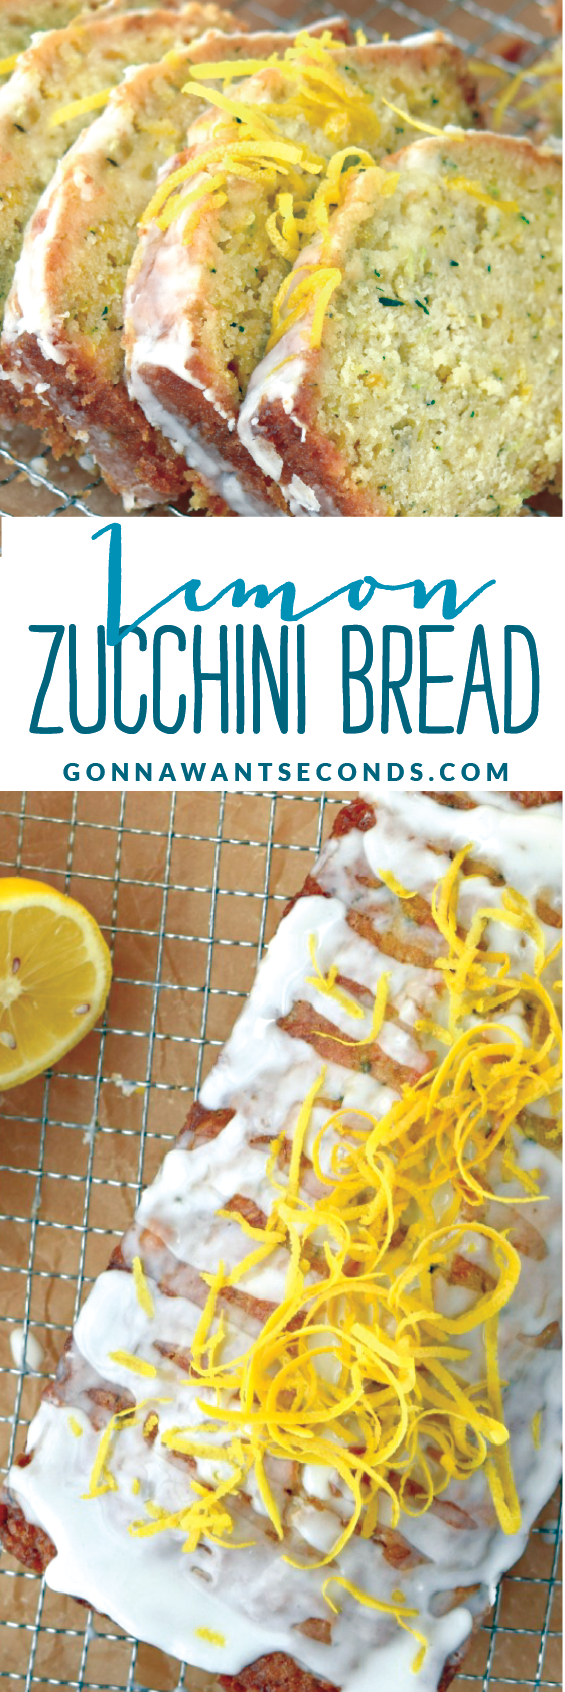 Lemon-Zucchini-Bread-PIN-04